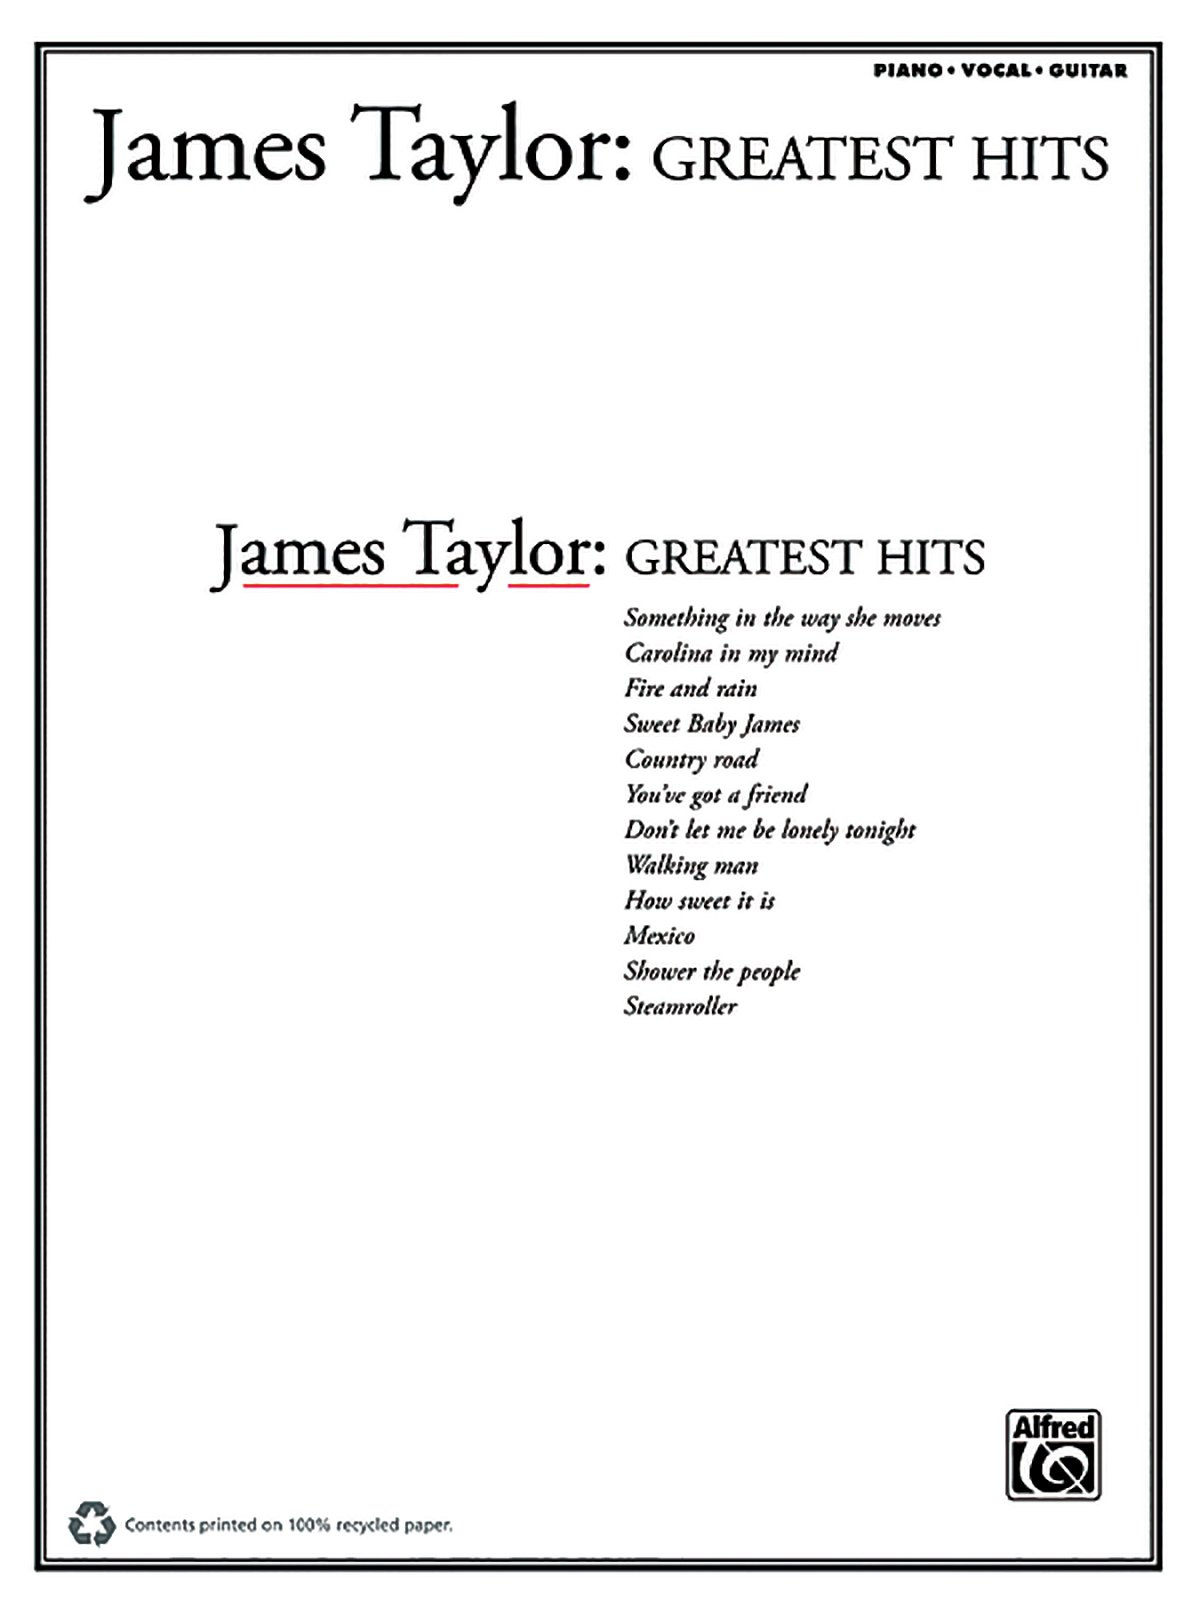 James Taylor Greatest Hits Piano Vocal Guitar Amazon